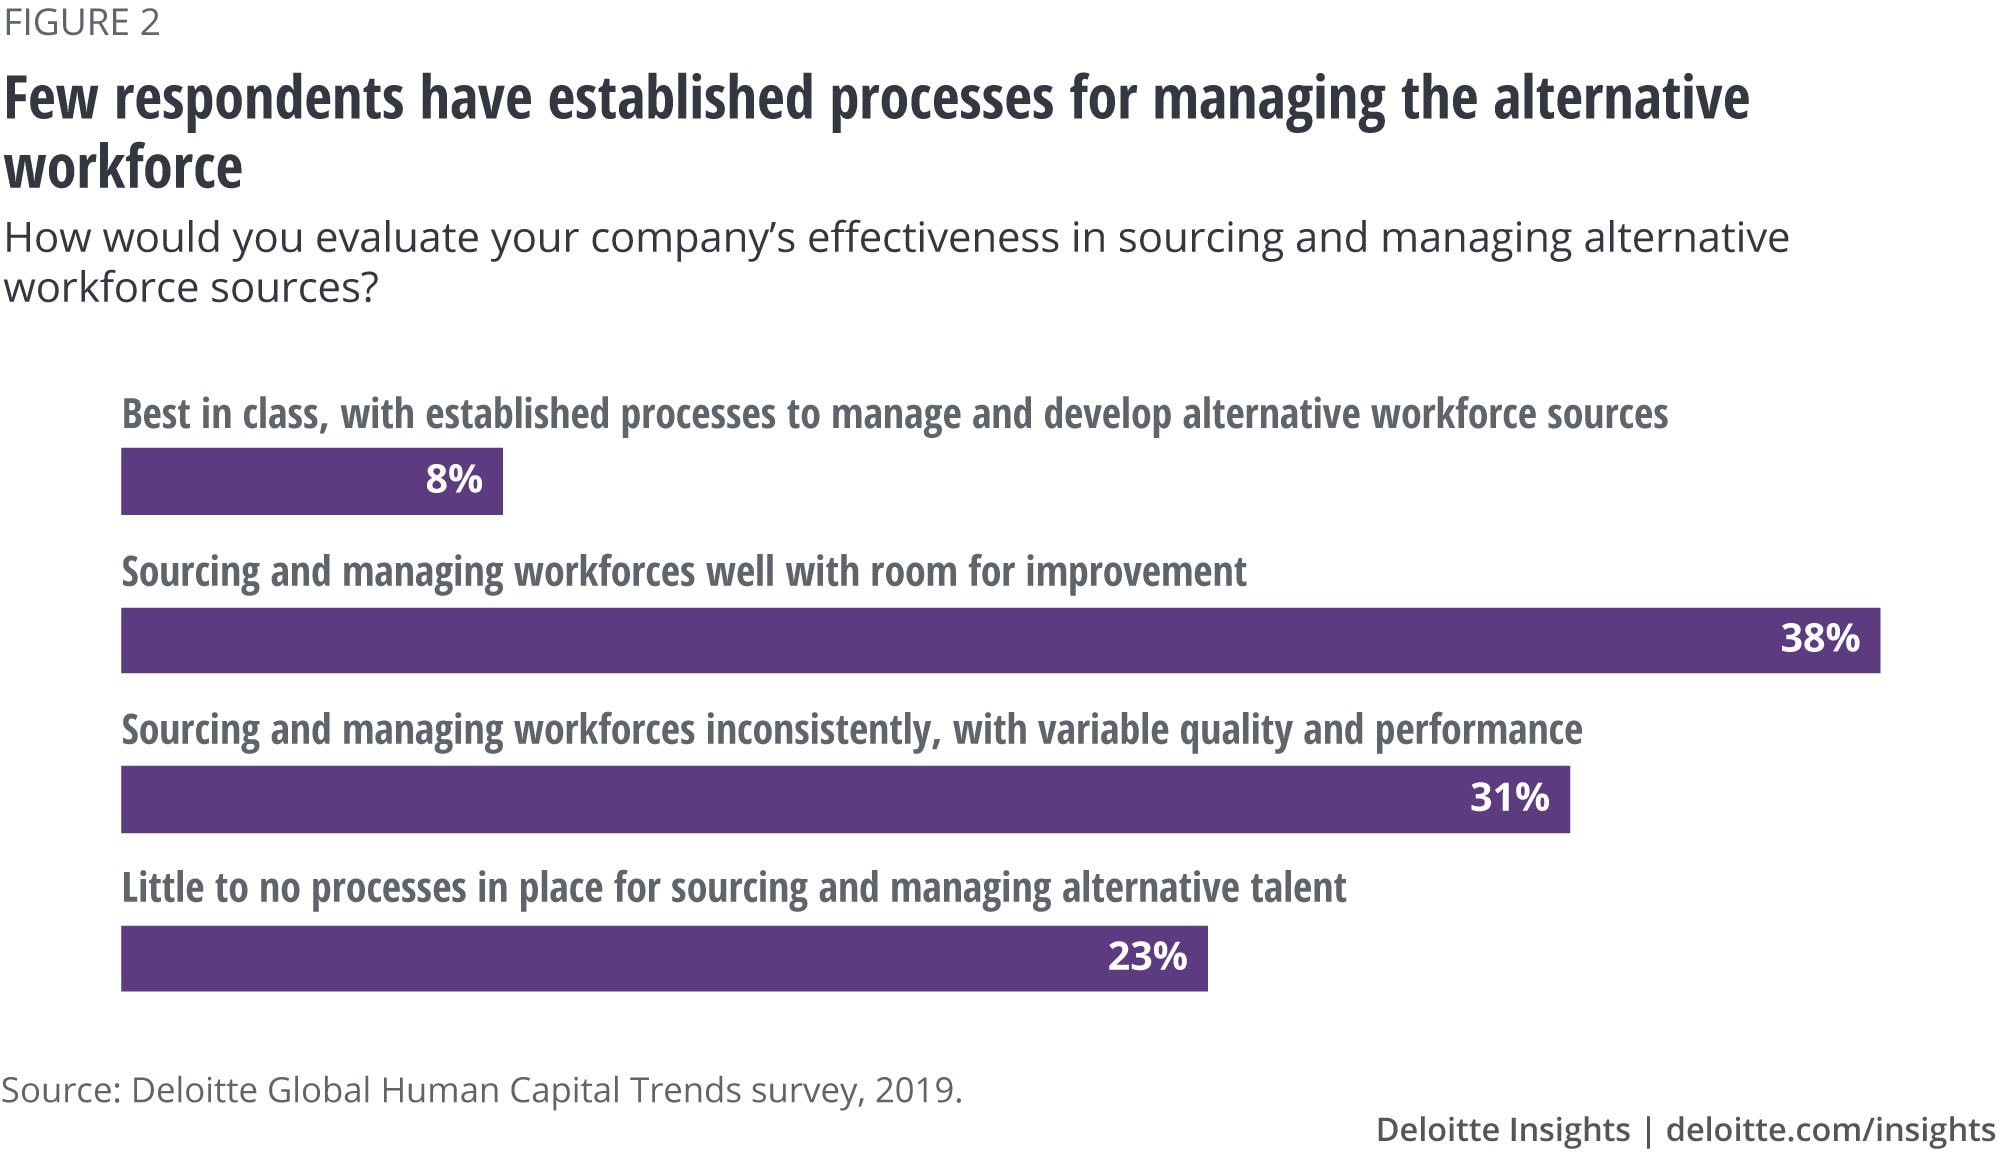 Few respondents have established processes for managing the alternative workforce